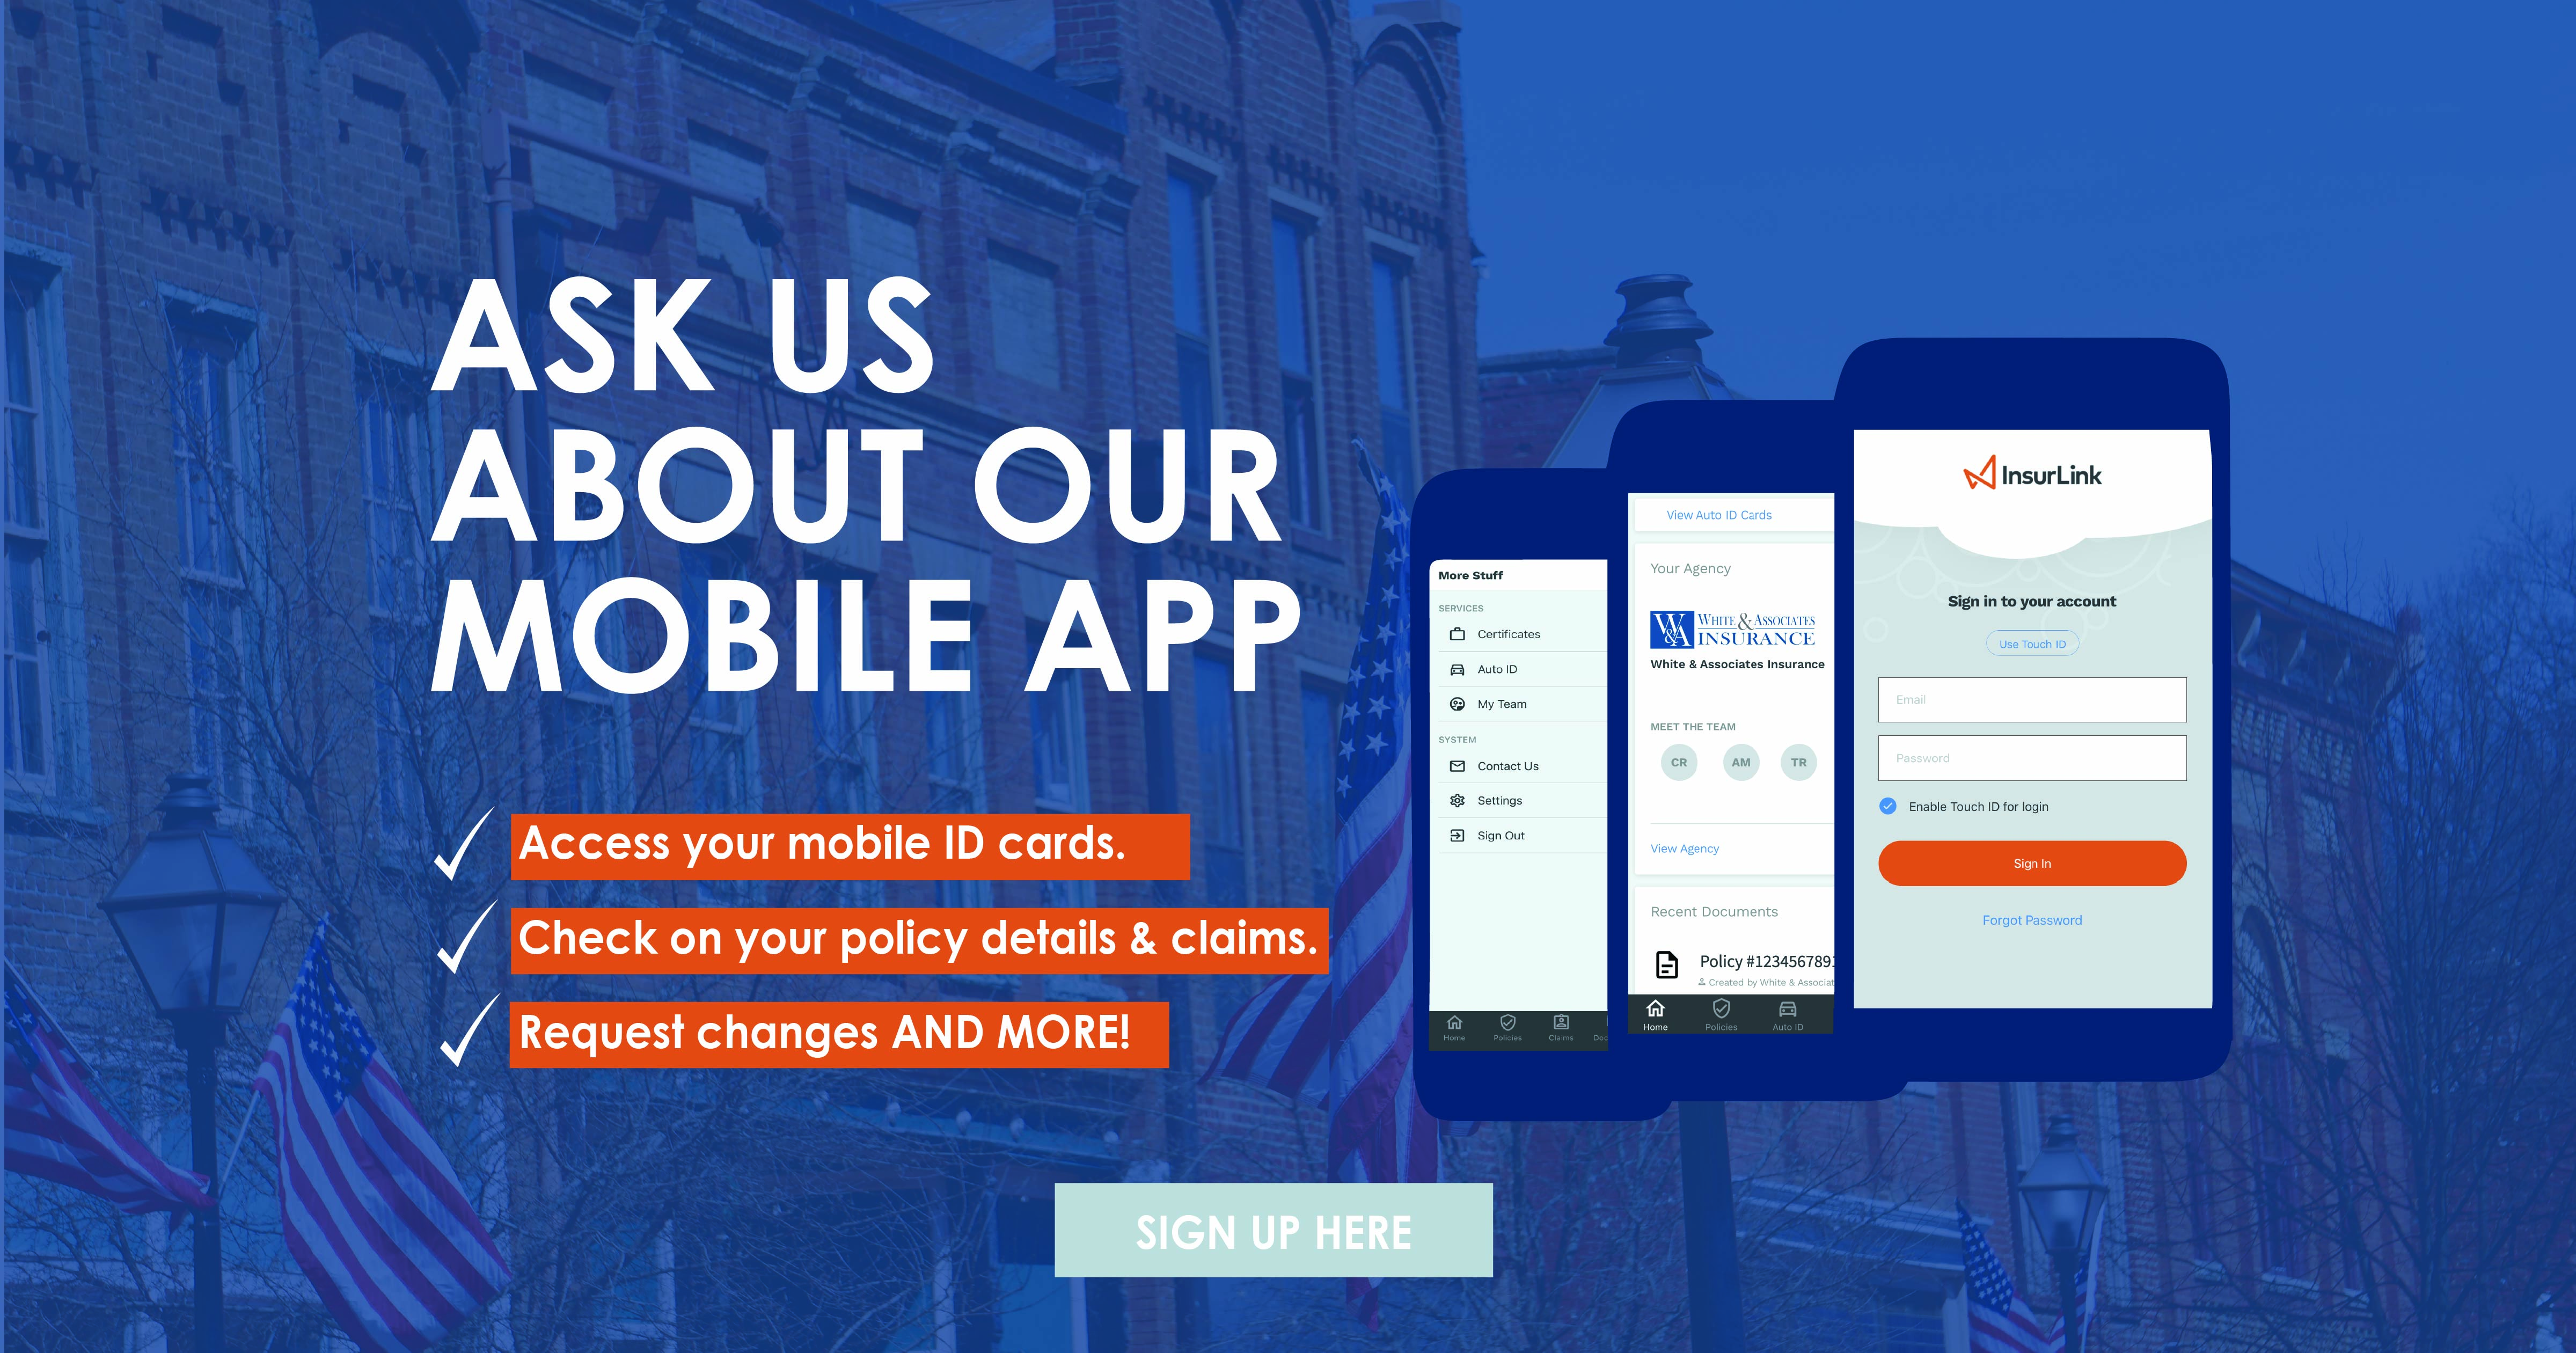 Ask us about our mobile app image